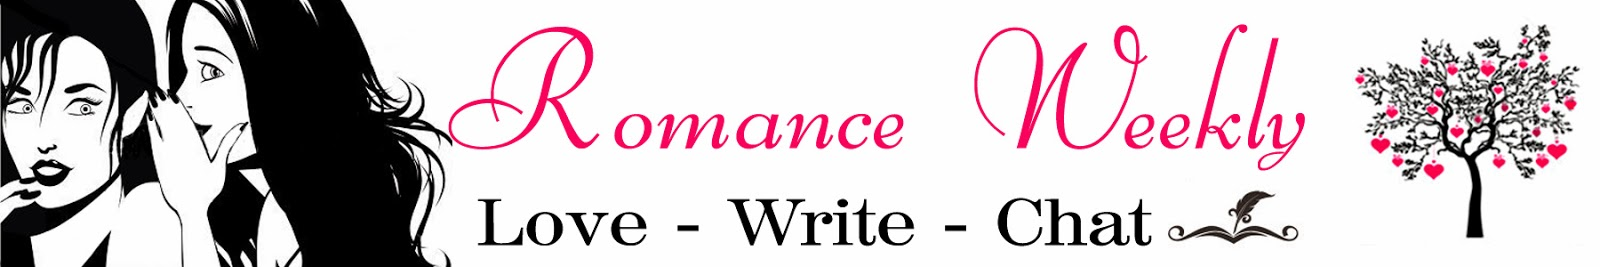 https://www.facebook.com/RomanceWritersWeekly/info?tab=page_info